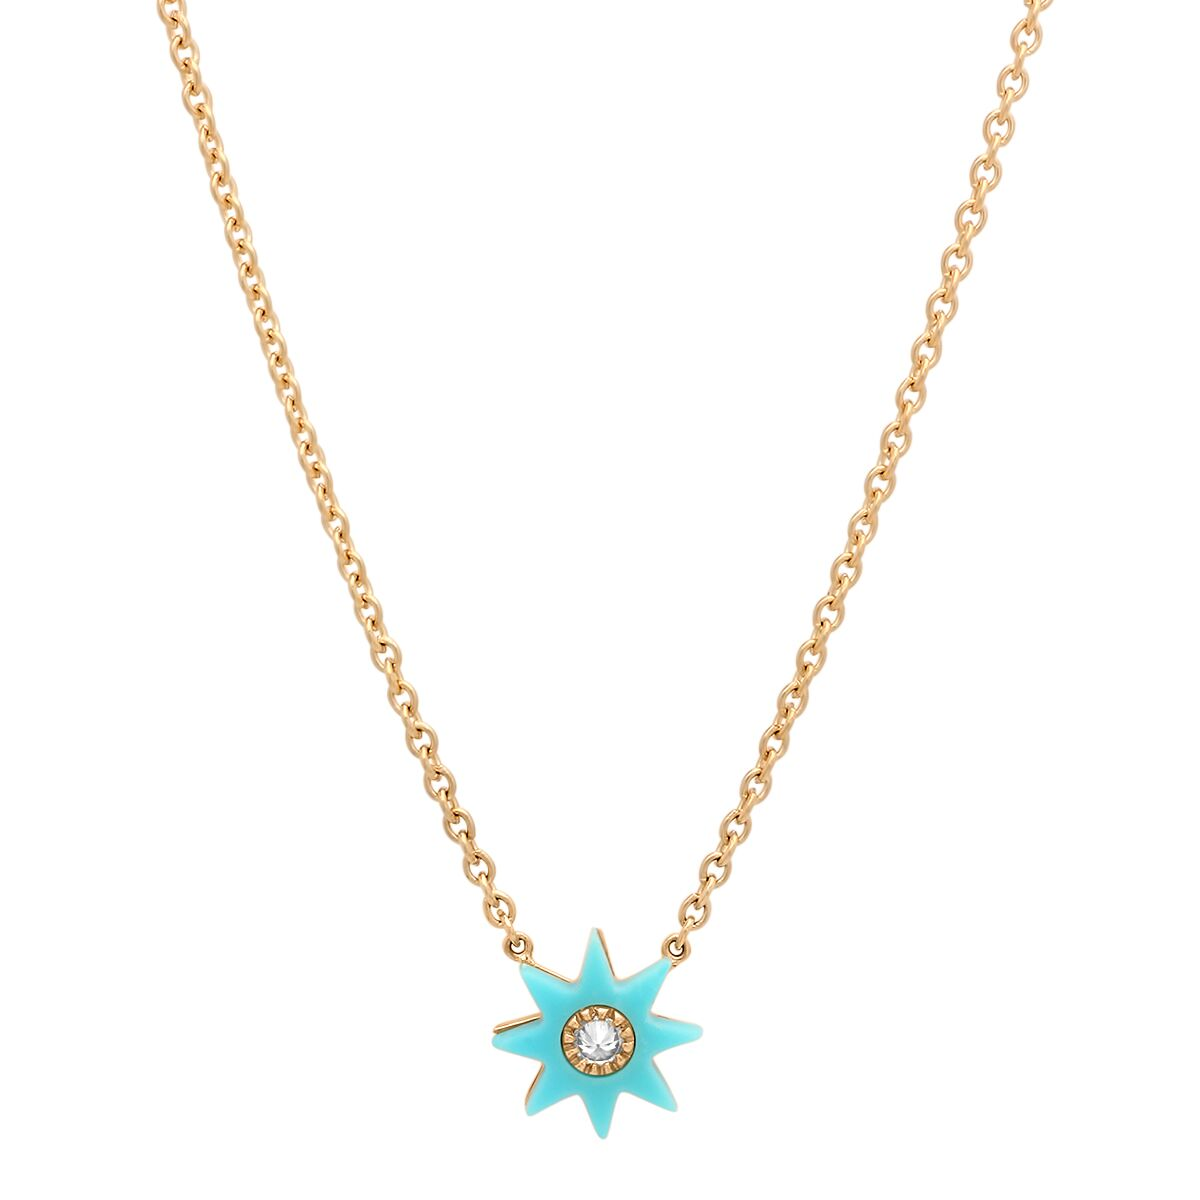 Turquoise Star Necklace by Colette for Broken English Jewelry